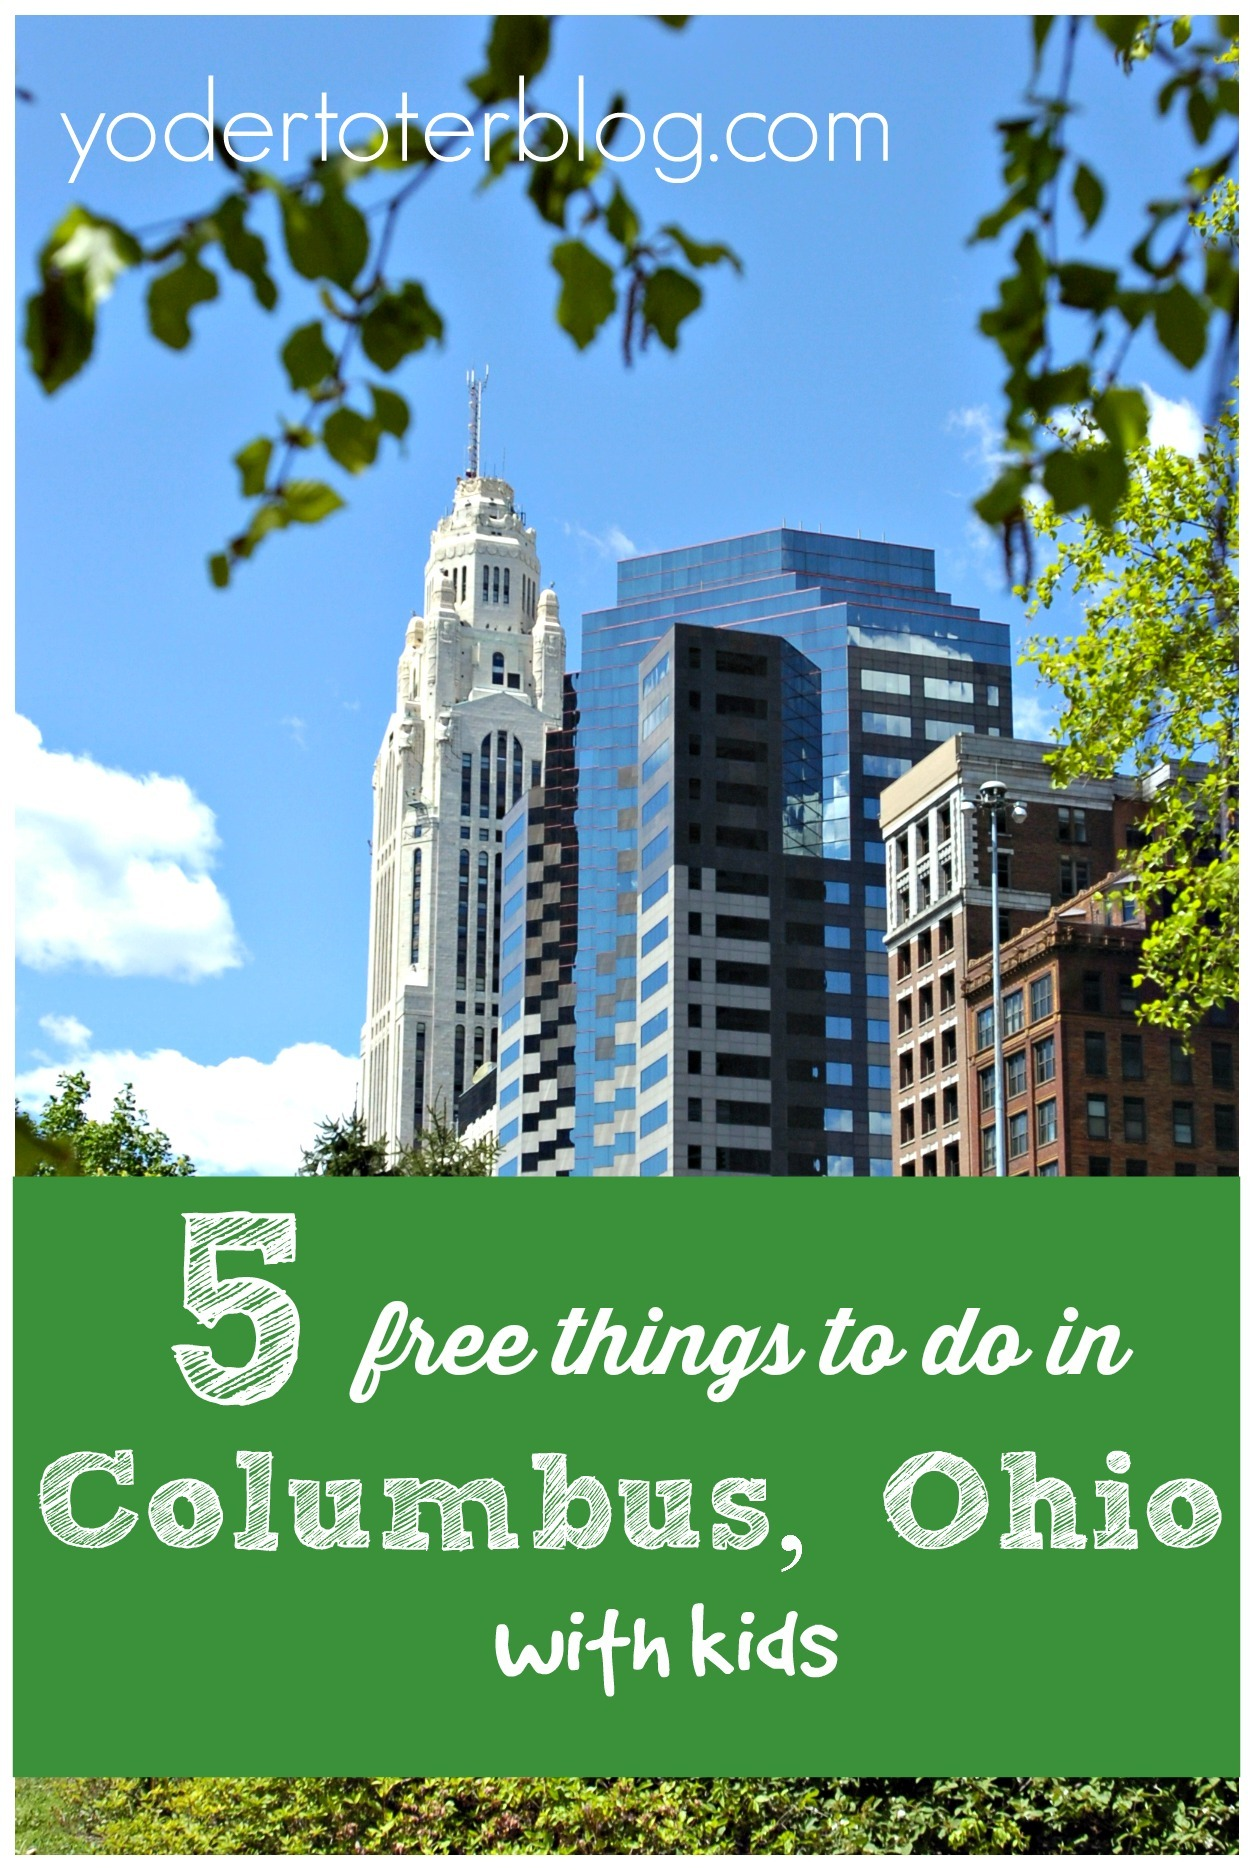 5 Free things to do in Columbus Ohio with kids